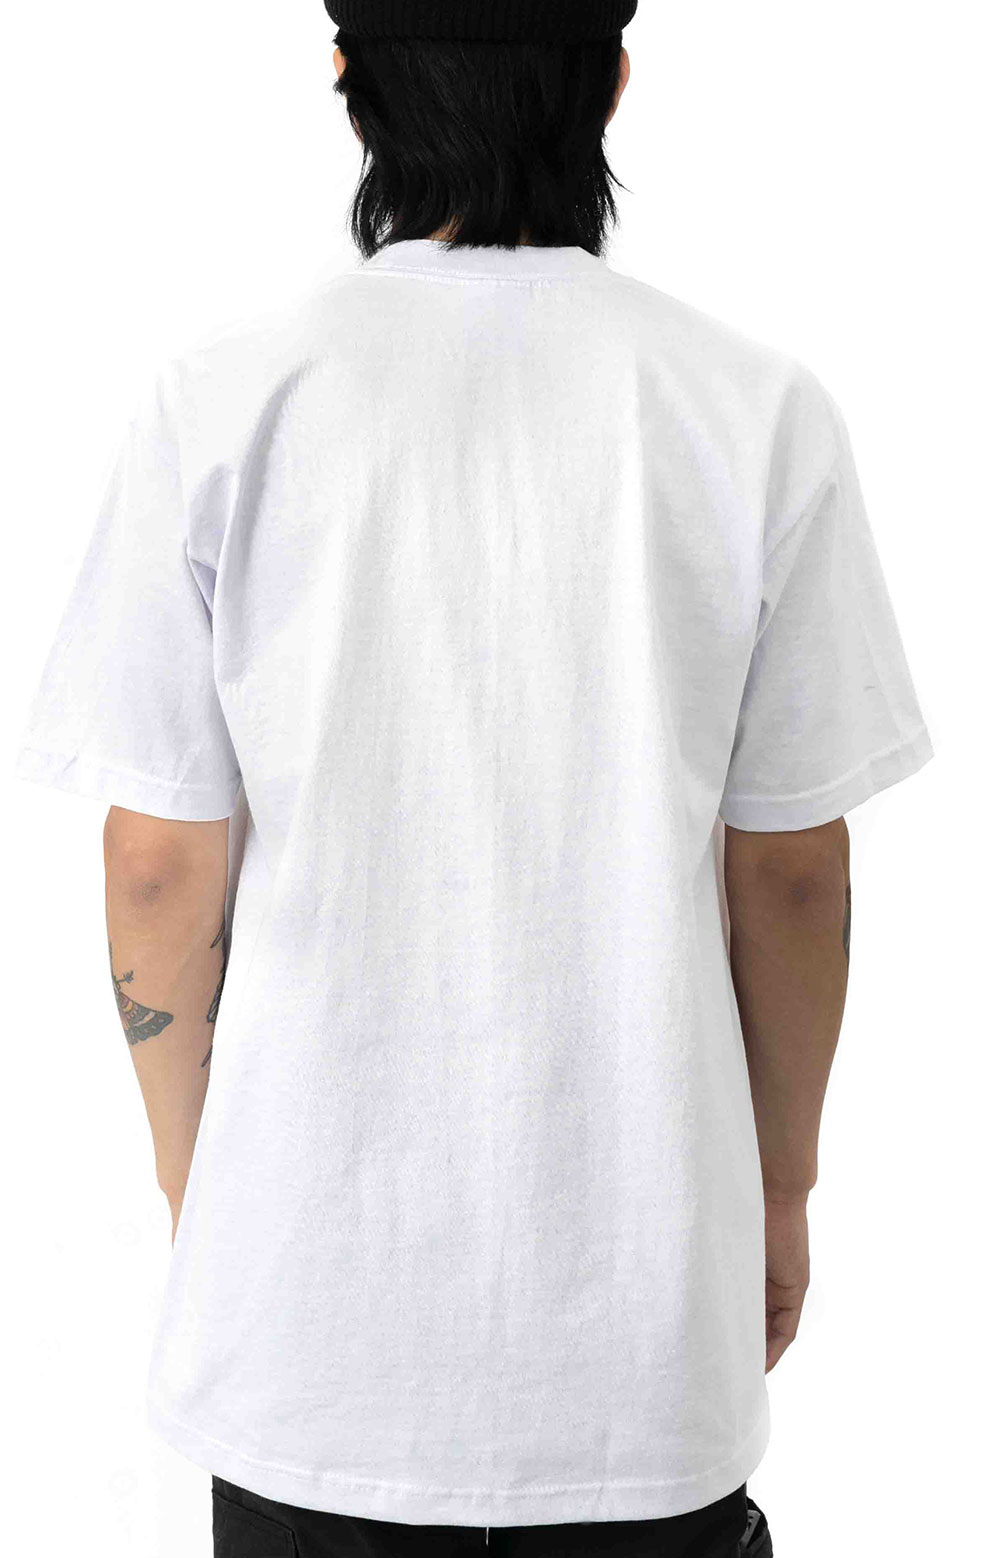 Max Heavyweight S/S T-Shirt - White 3